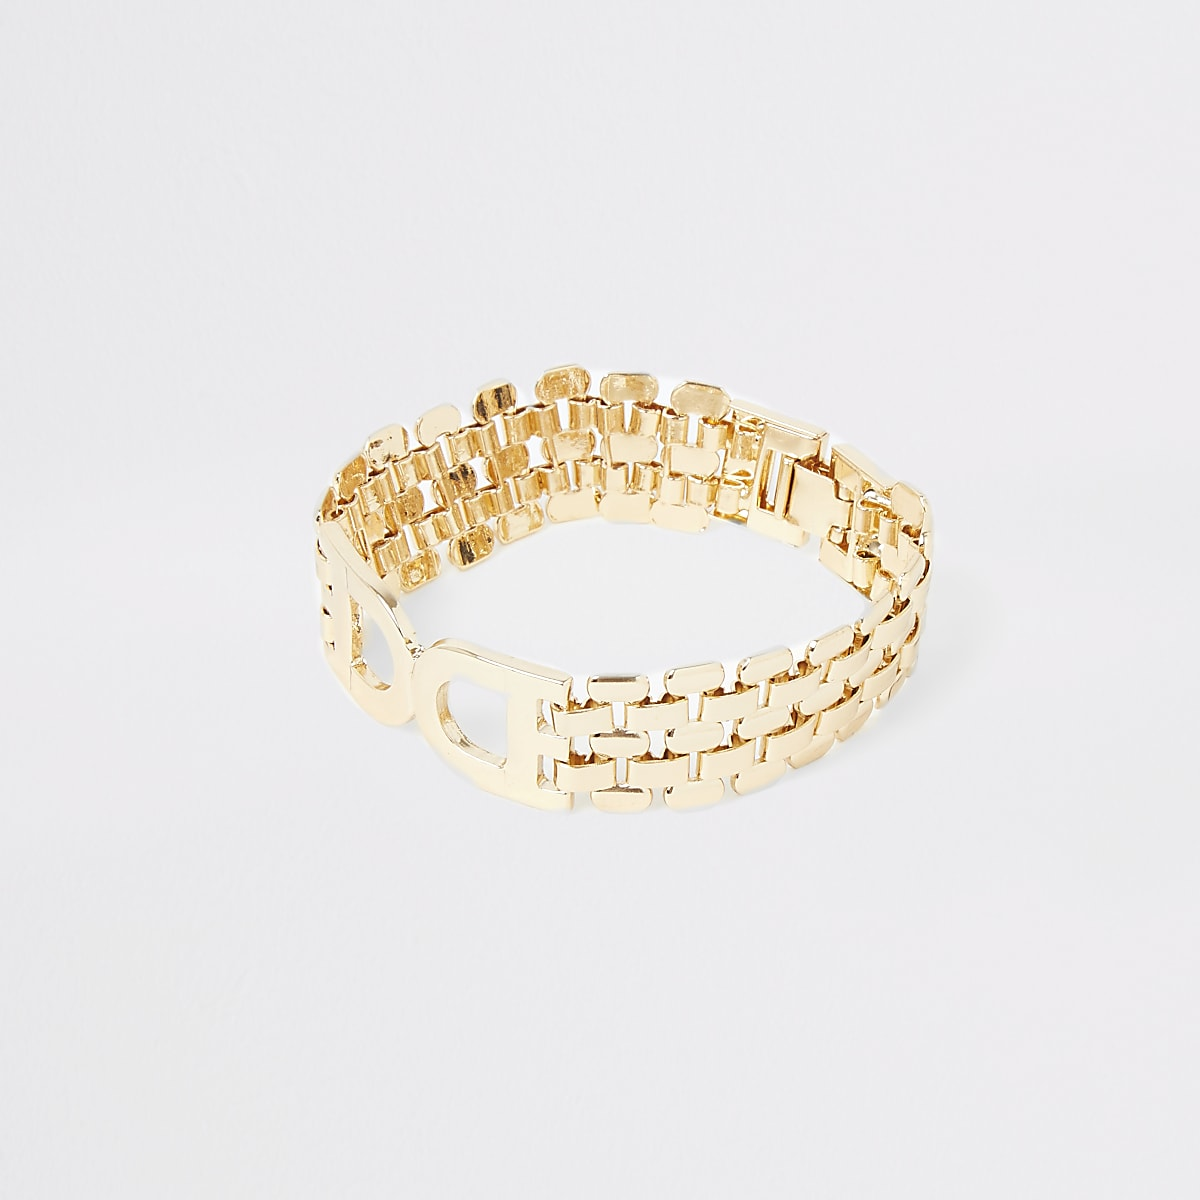 Gold color D ring chain bracelet